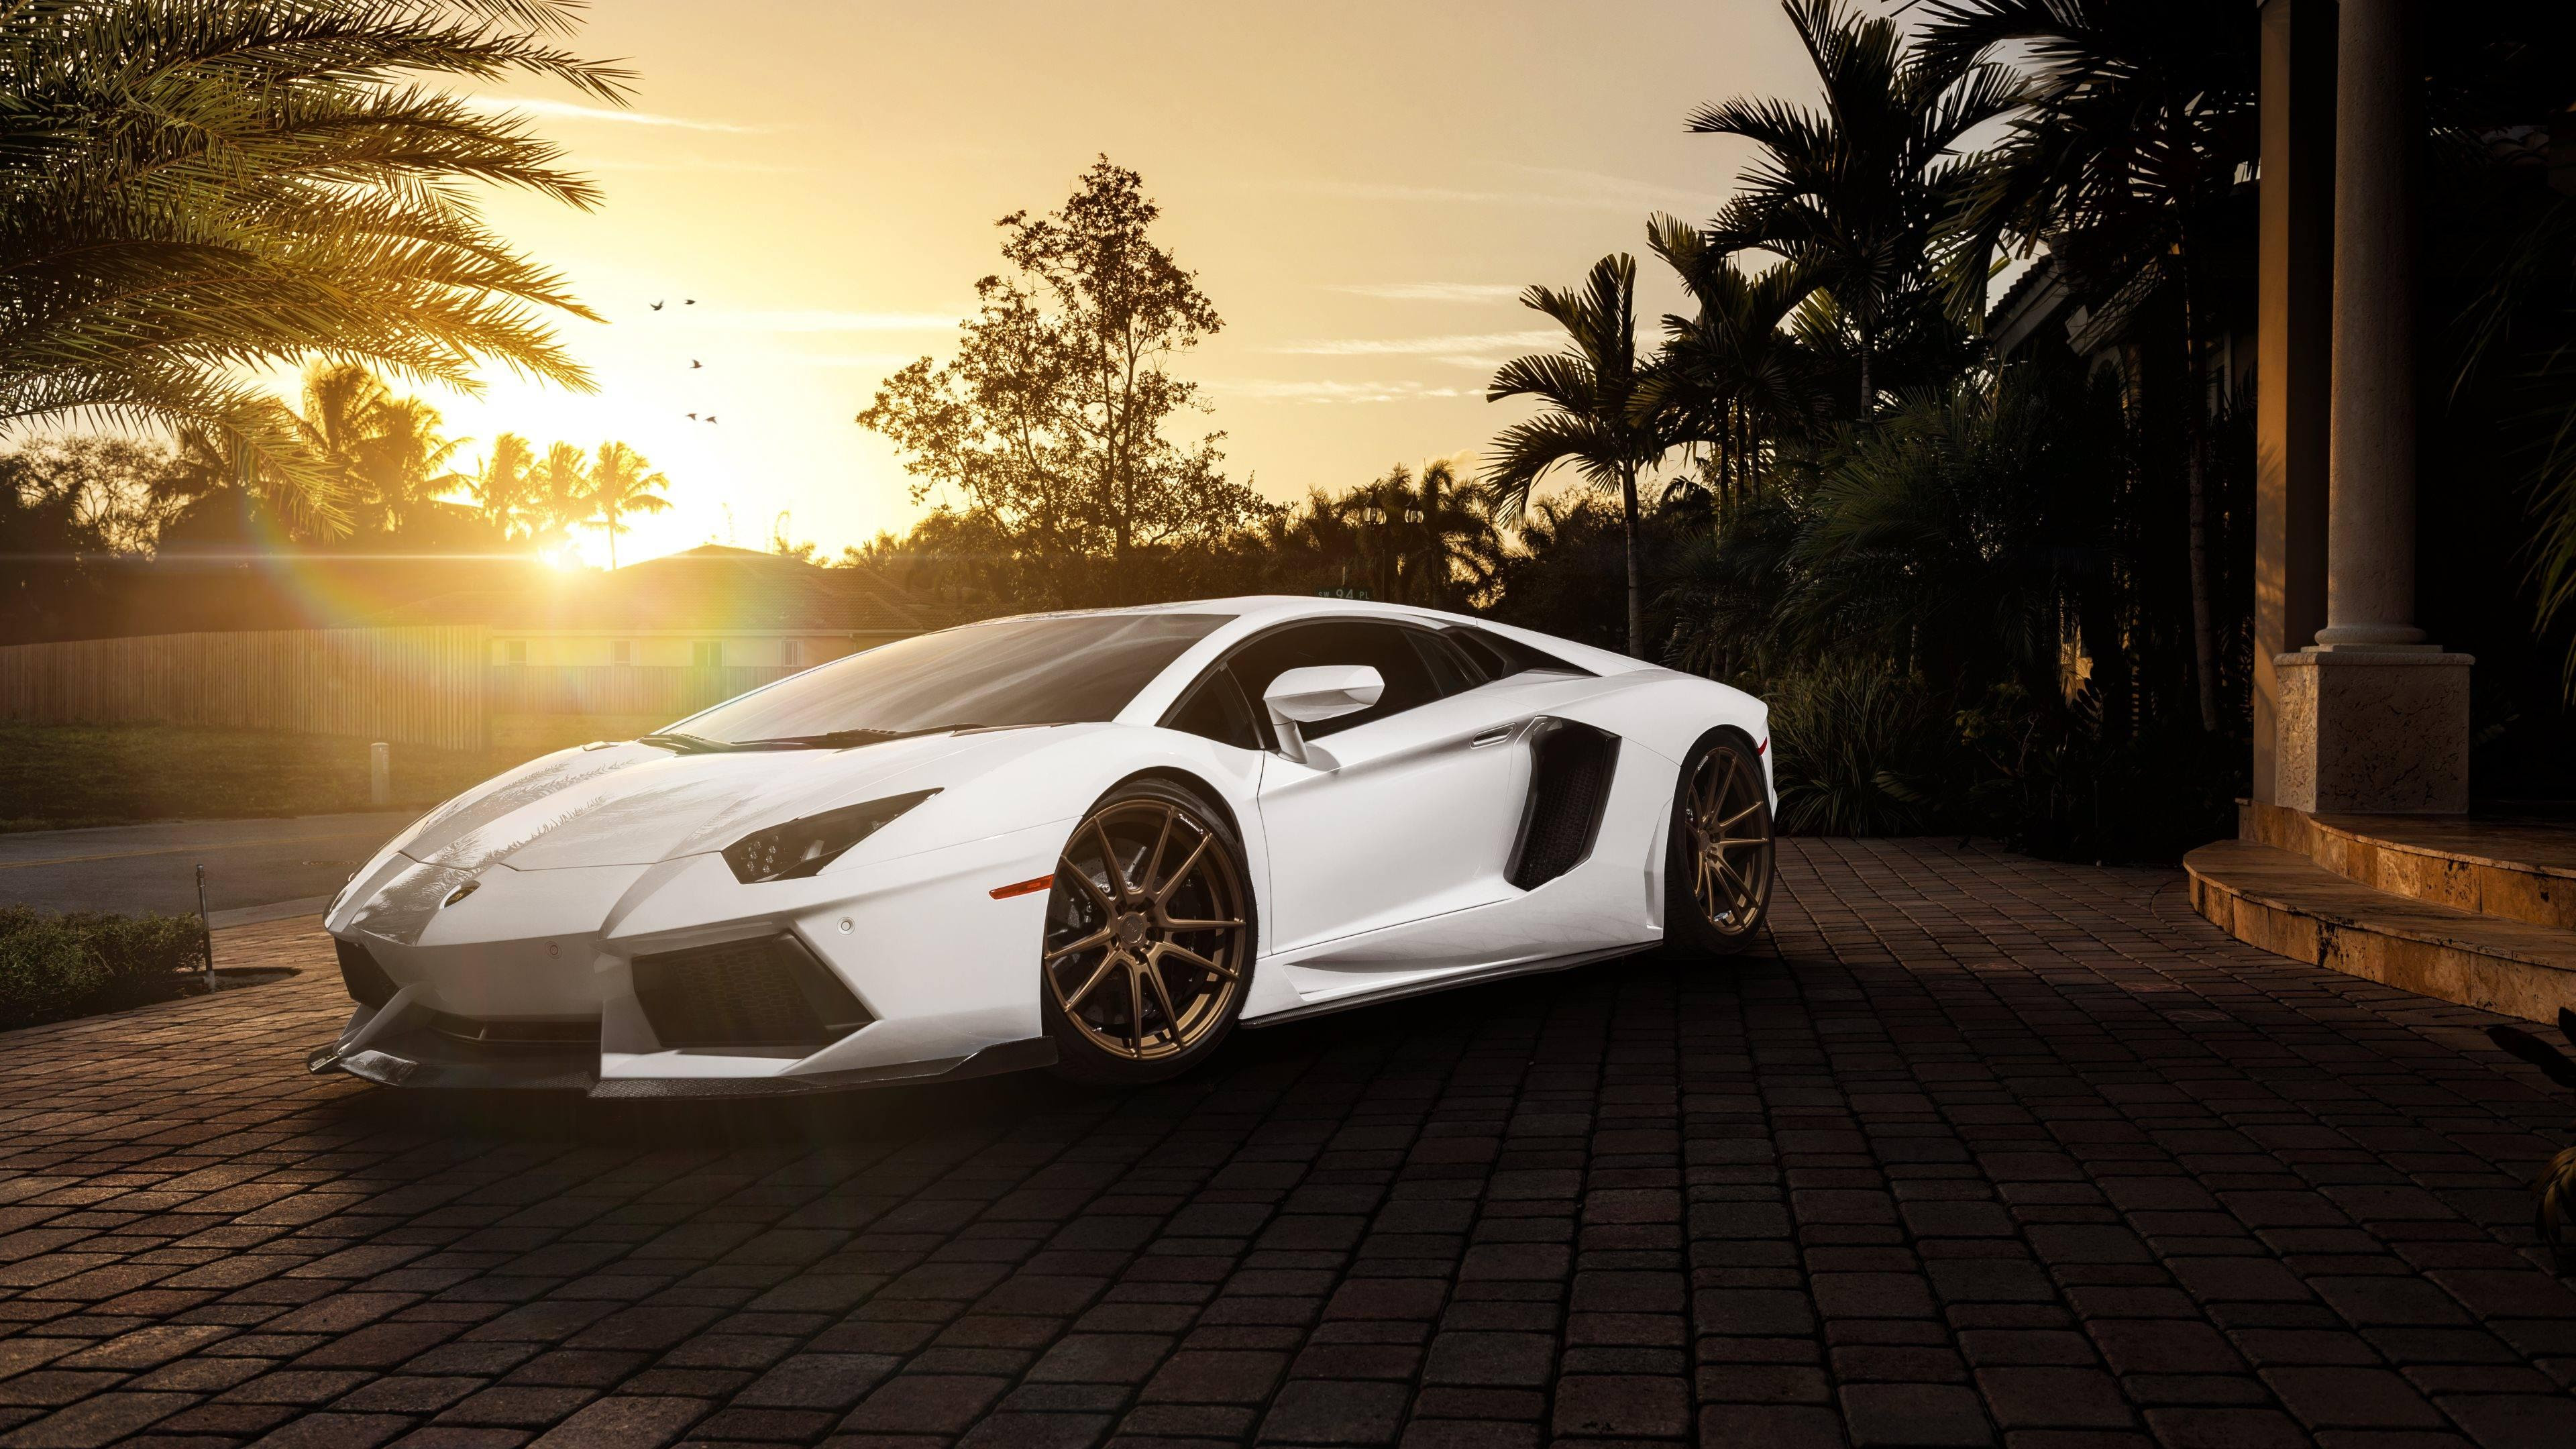 HD Wallpapers Lamborghini Aventador  WallpaperSafari